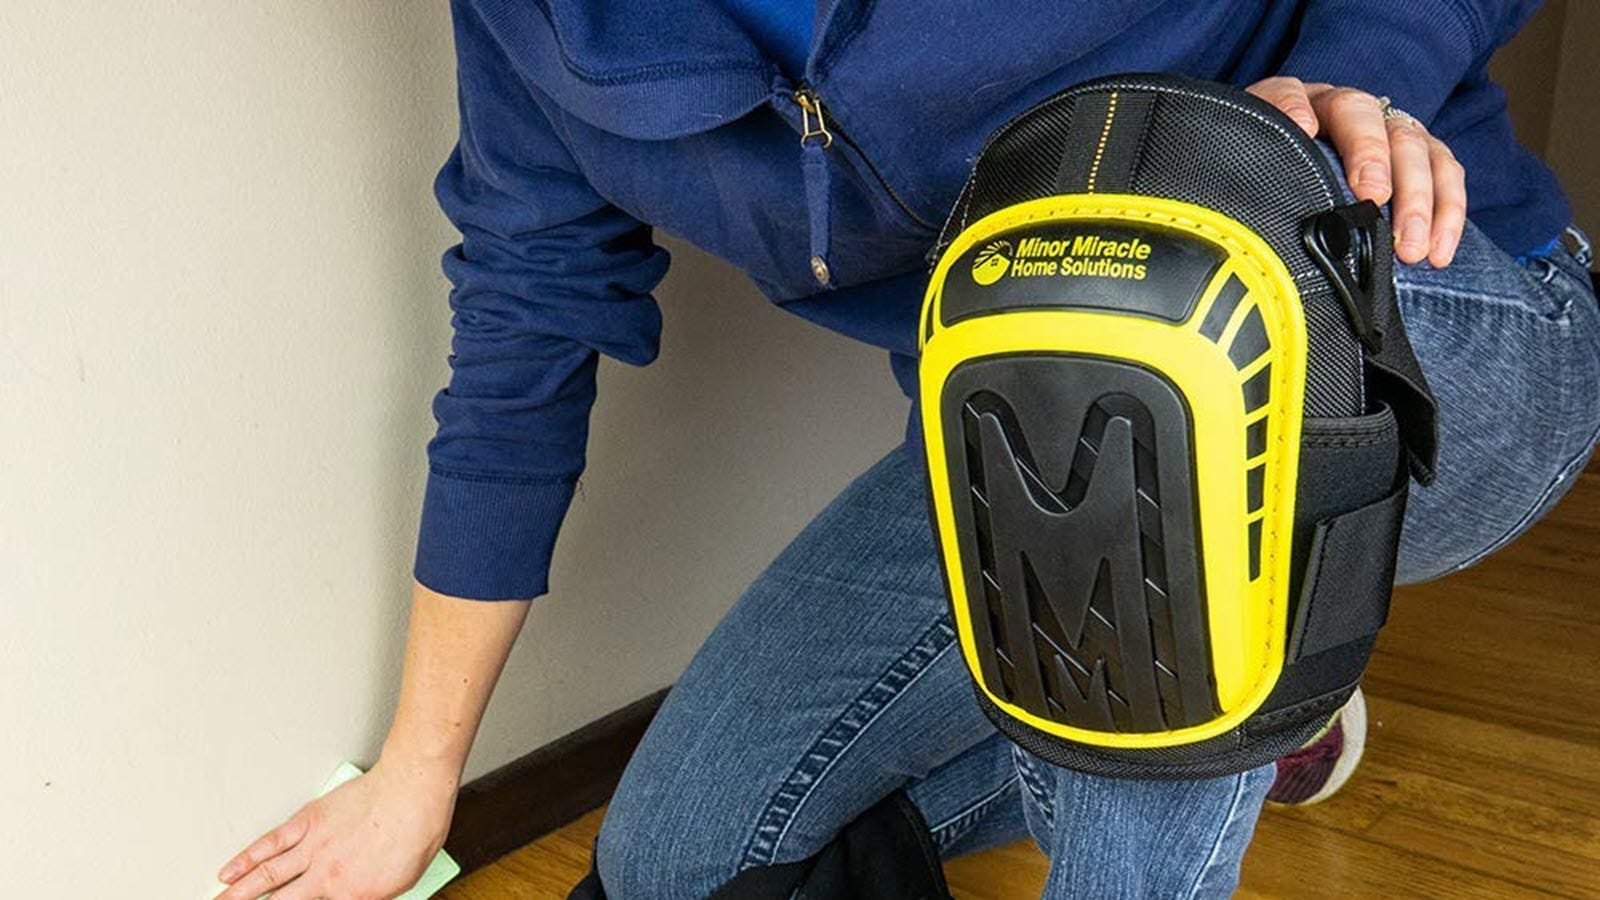 A person on one knee, wearing the yellow and black Minor Miracle Home Solutions Kneepads.